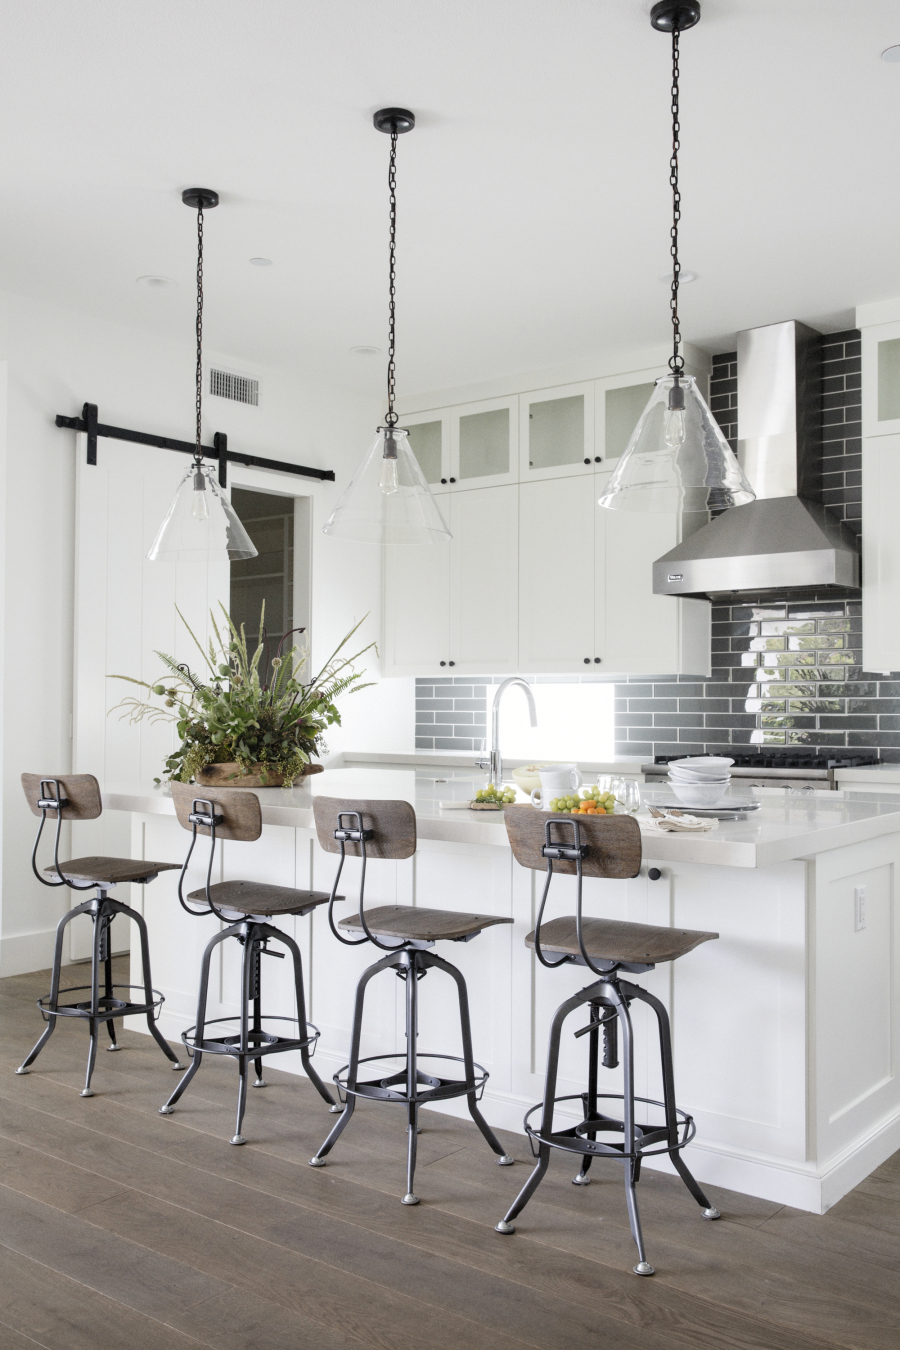 white farmhouse with vintage wood and metal barstool vinyl flooring hardwood dieas sliding barn door pantry grey subway backsplash white kitchen glas lantern chandelier shop room ideas